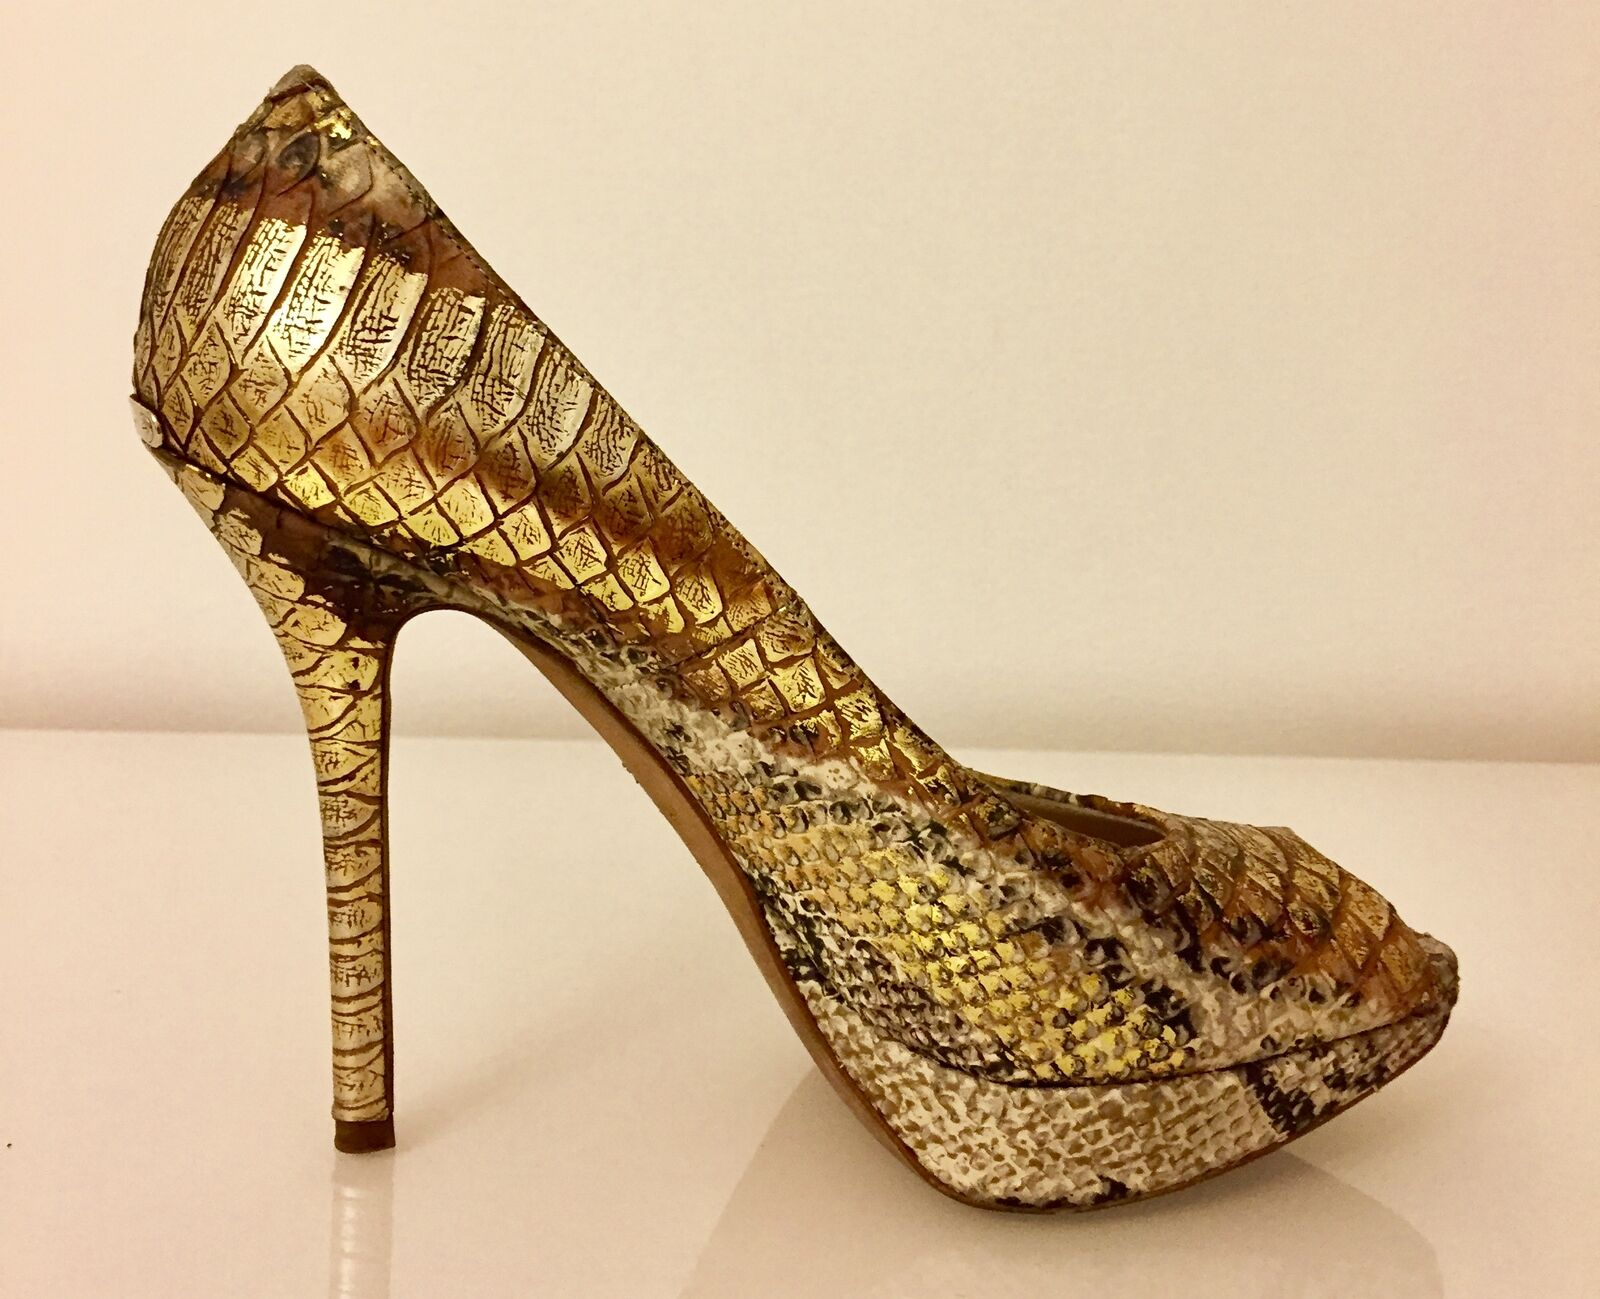 DIOR Pumps Decollete offener Zehe Stiletto UK GOLD US 8 / UK Stiletto 6 / EU 38,5 1e1e45